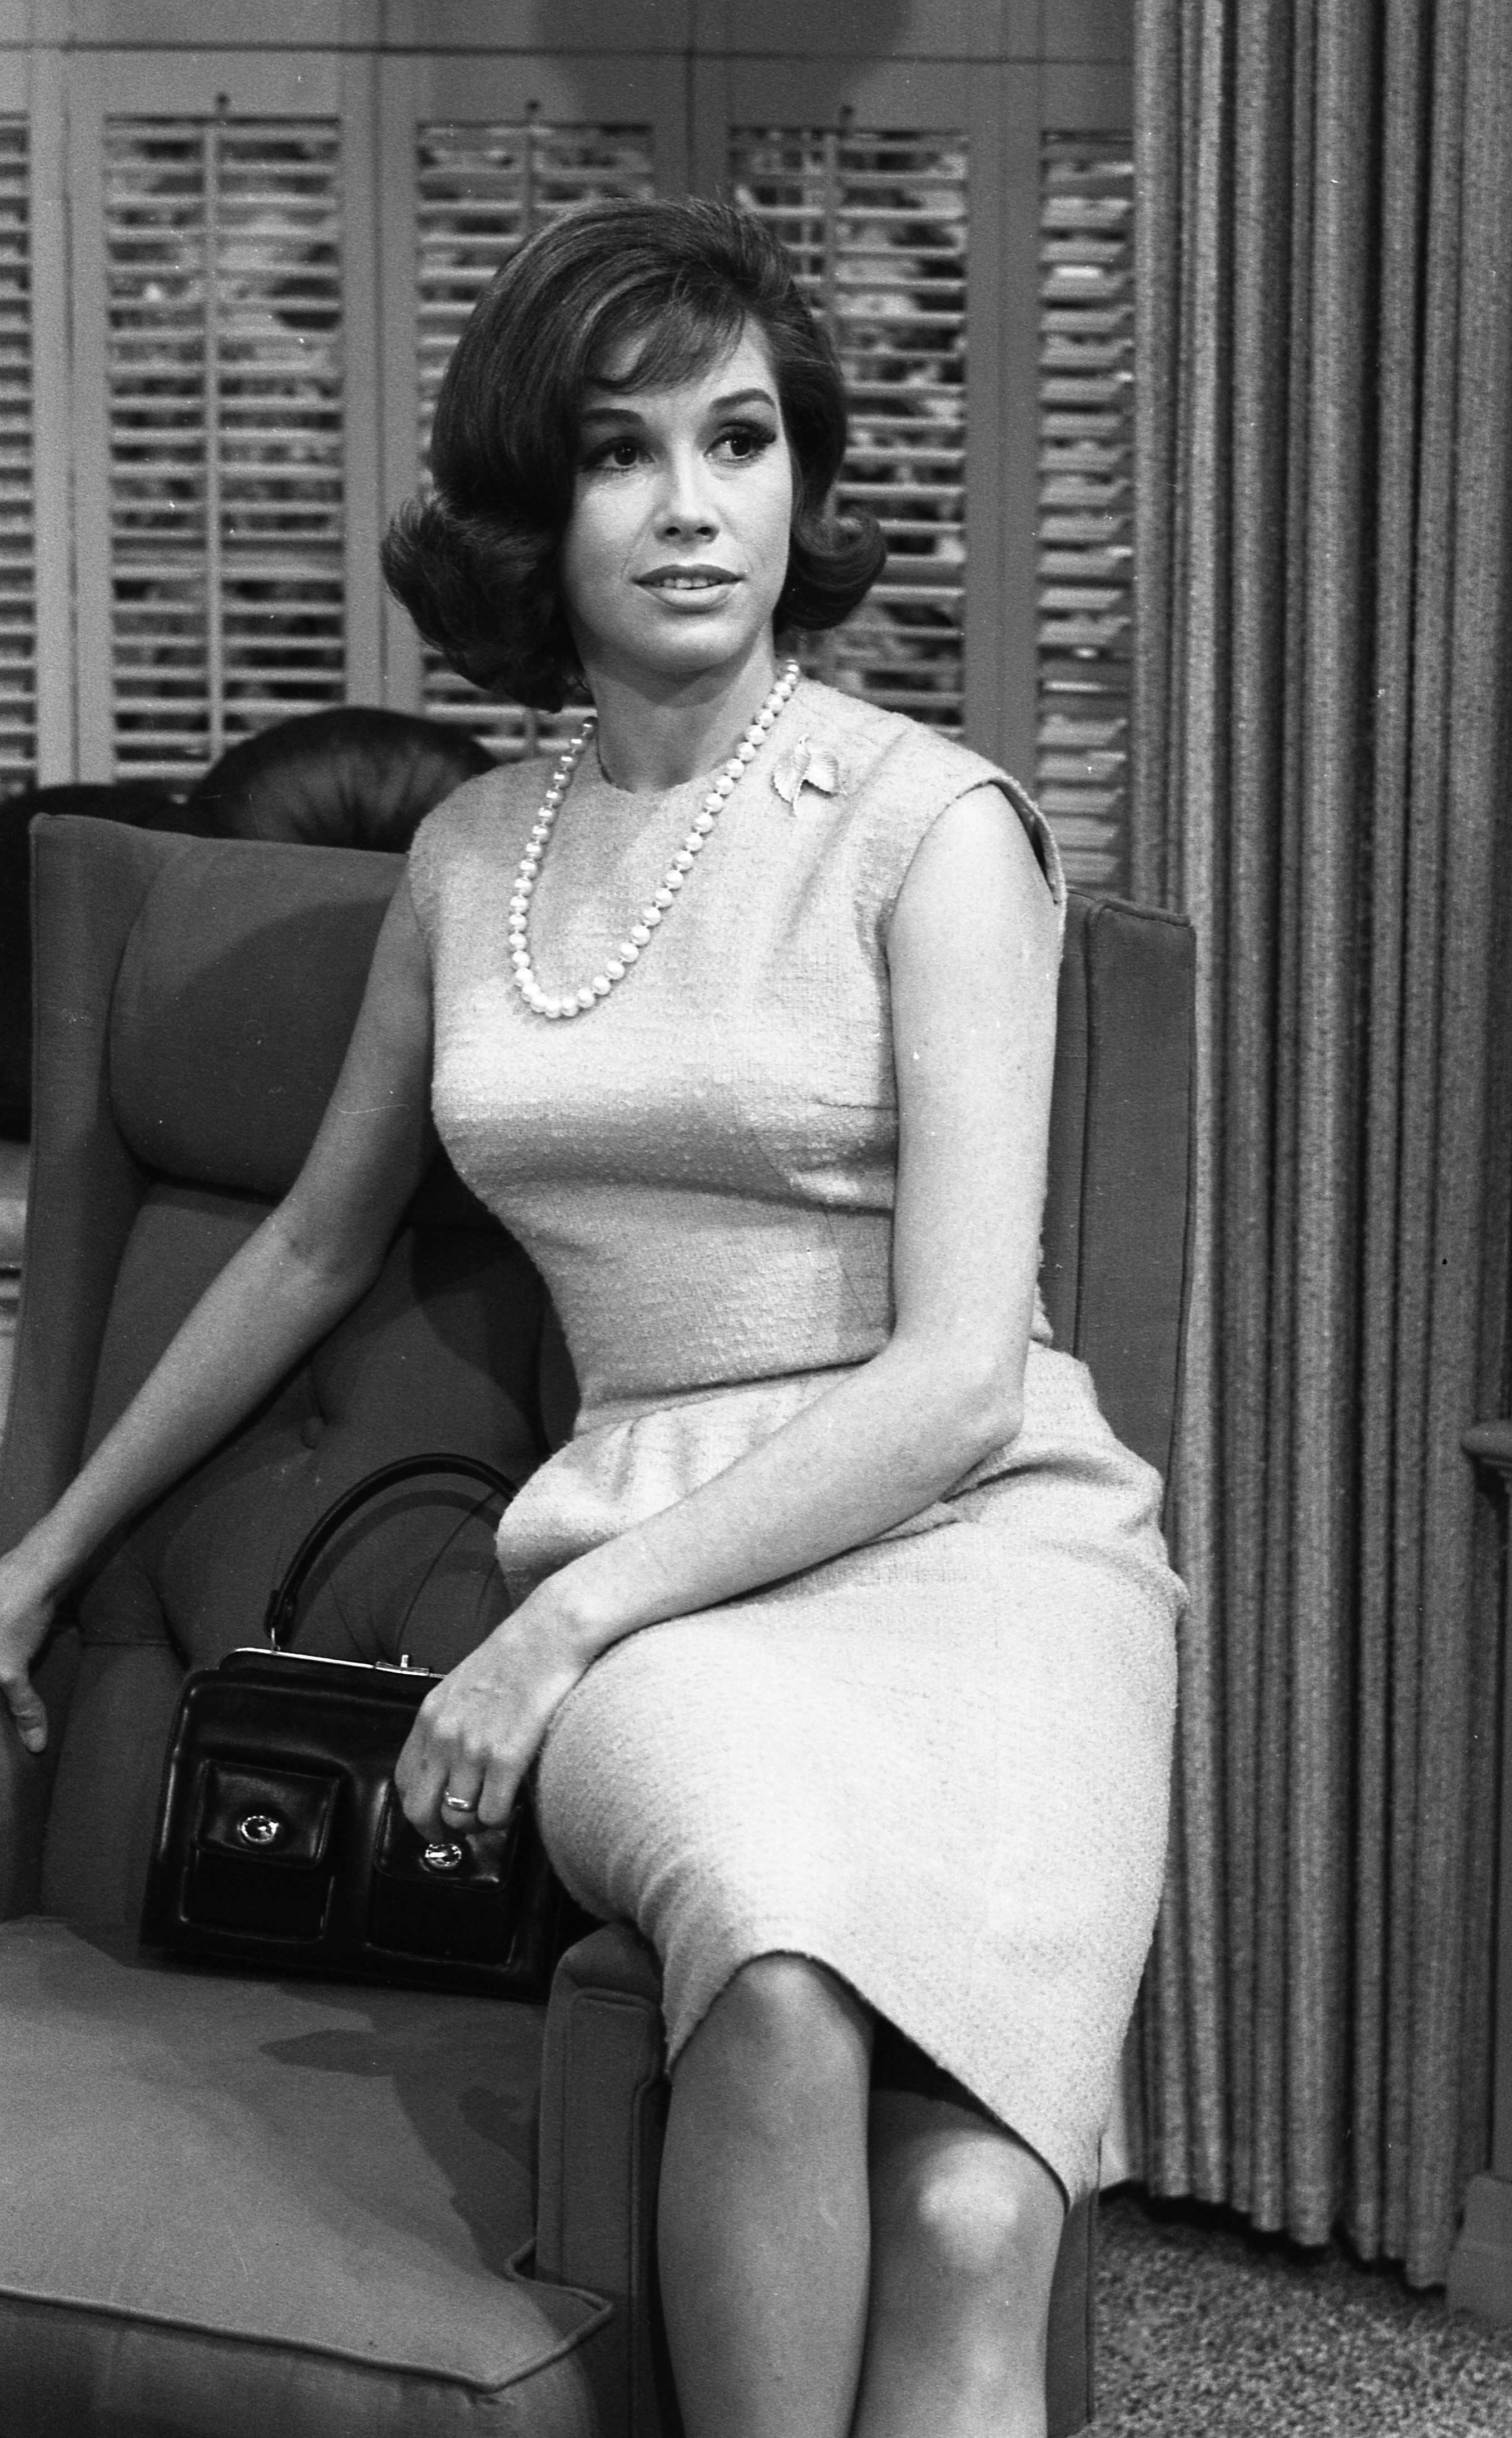 Mary tyler moore pantyhose